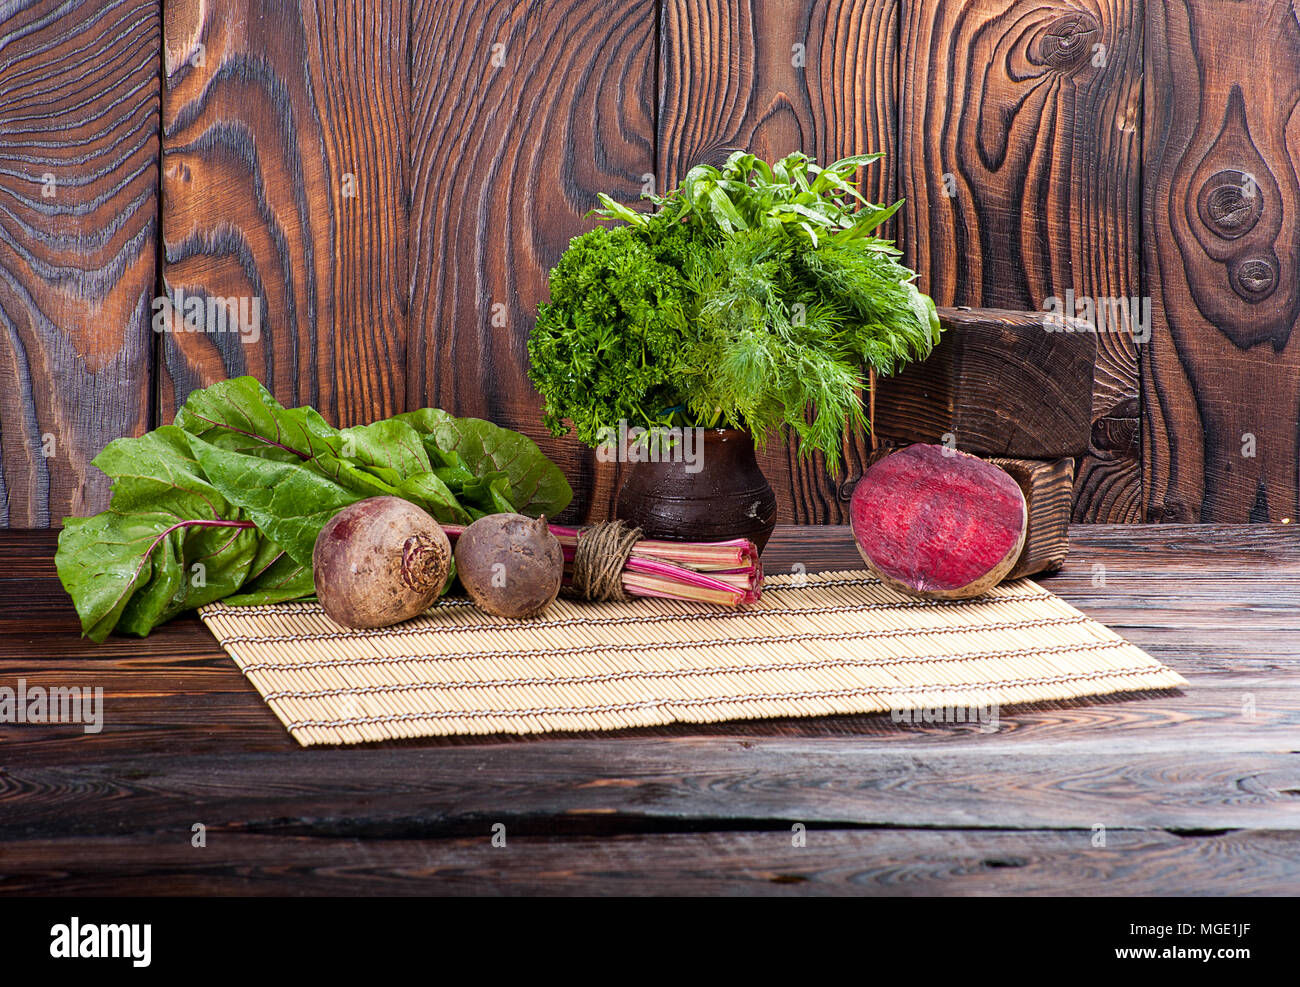 Still life of beetroot and beet leaves on wooden background - Stock Image